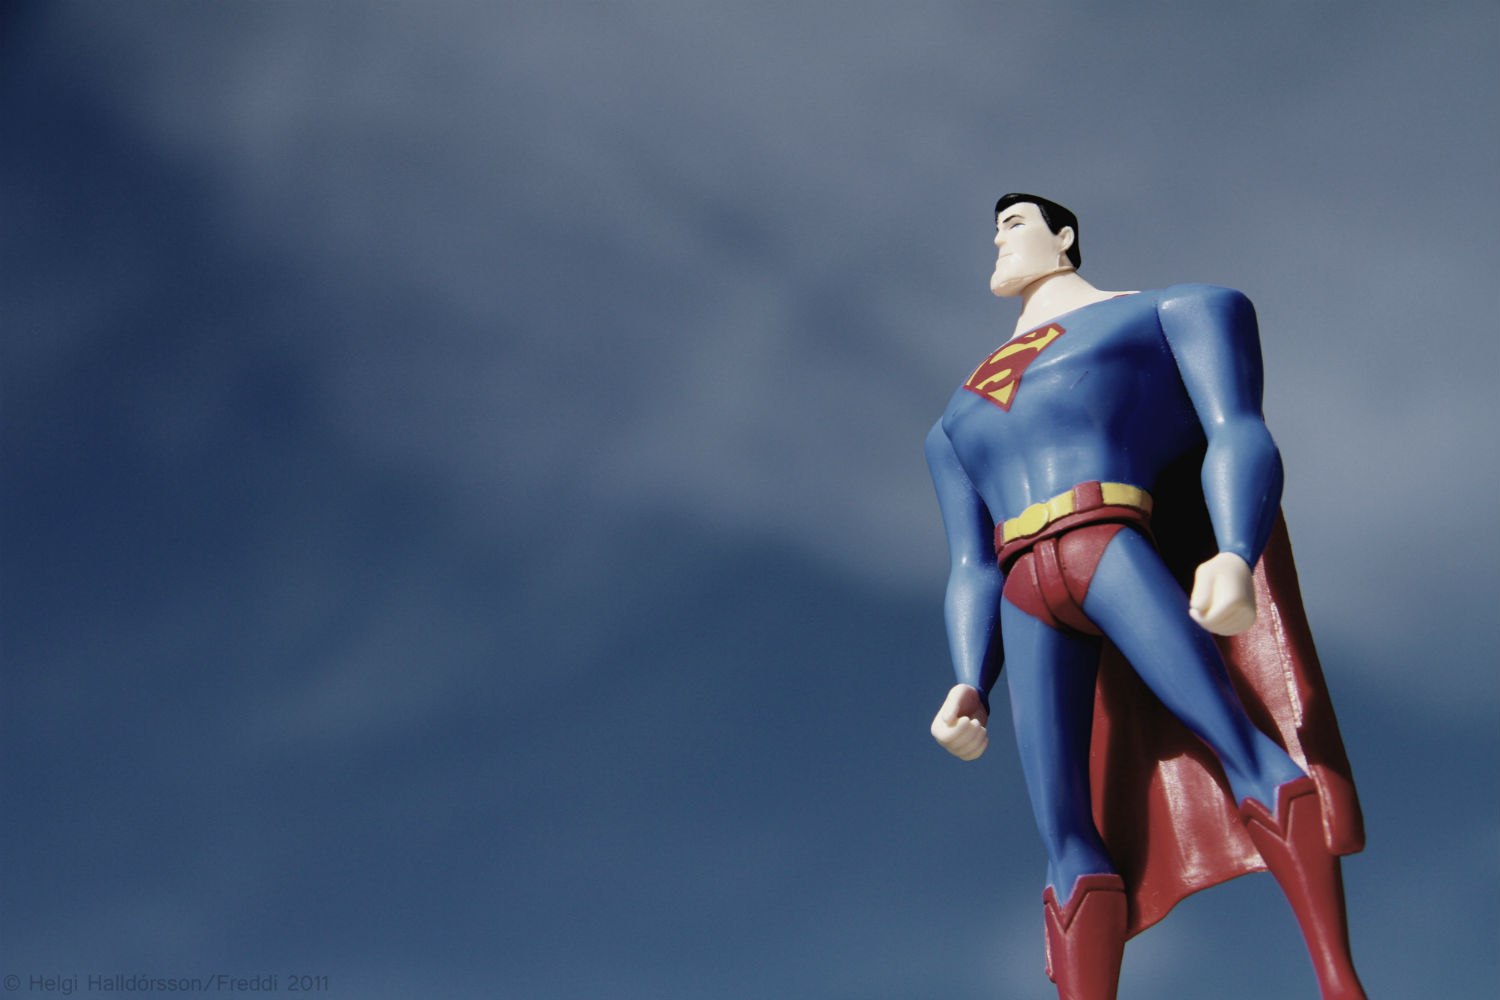 Risks in the field-Healthcare Worker safety Article superman youve got me whos got you header image